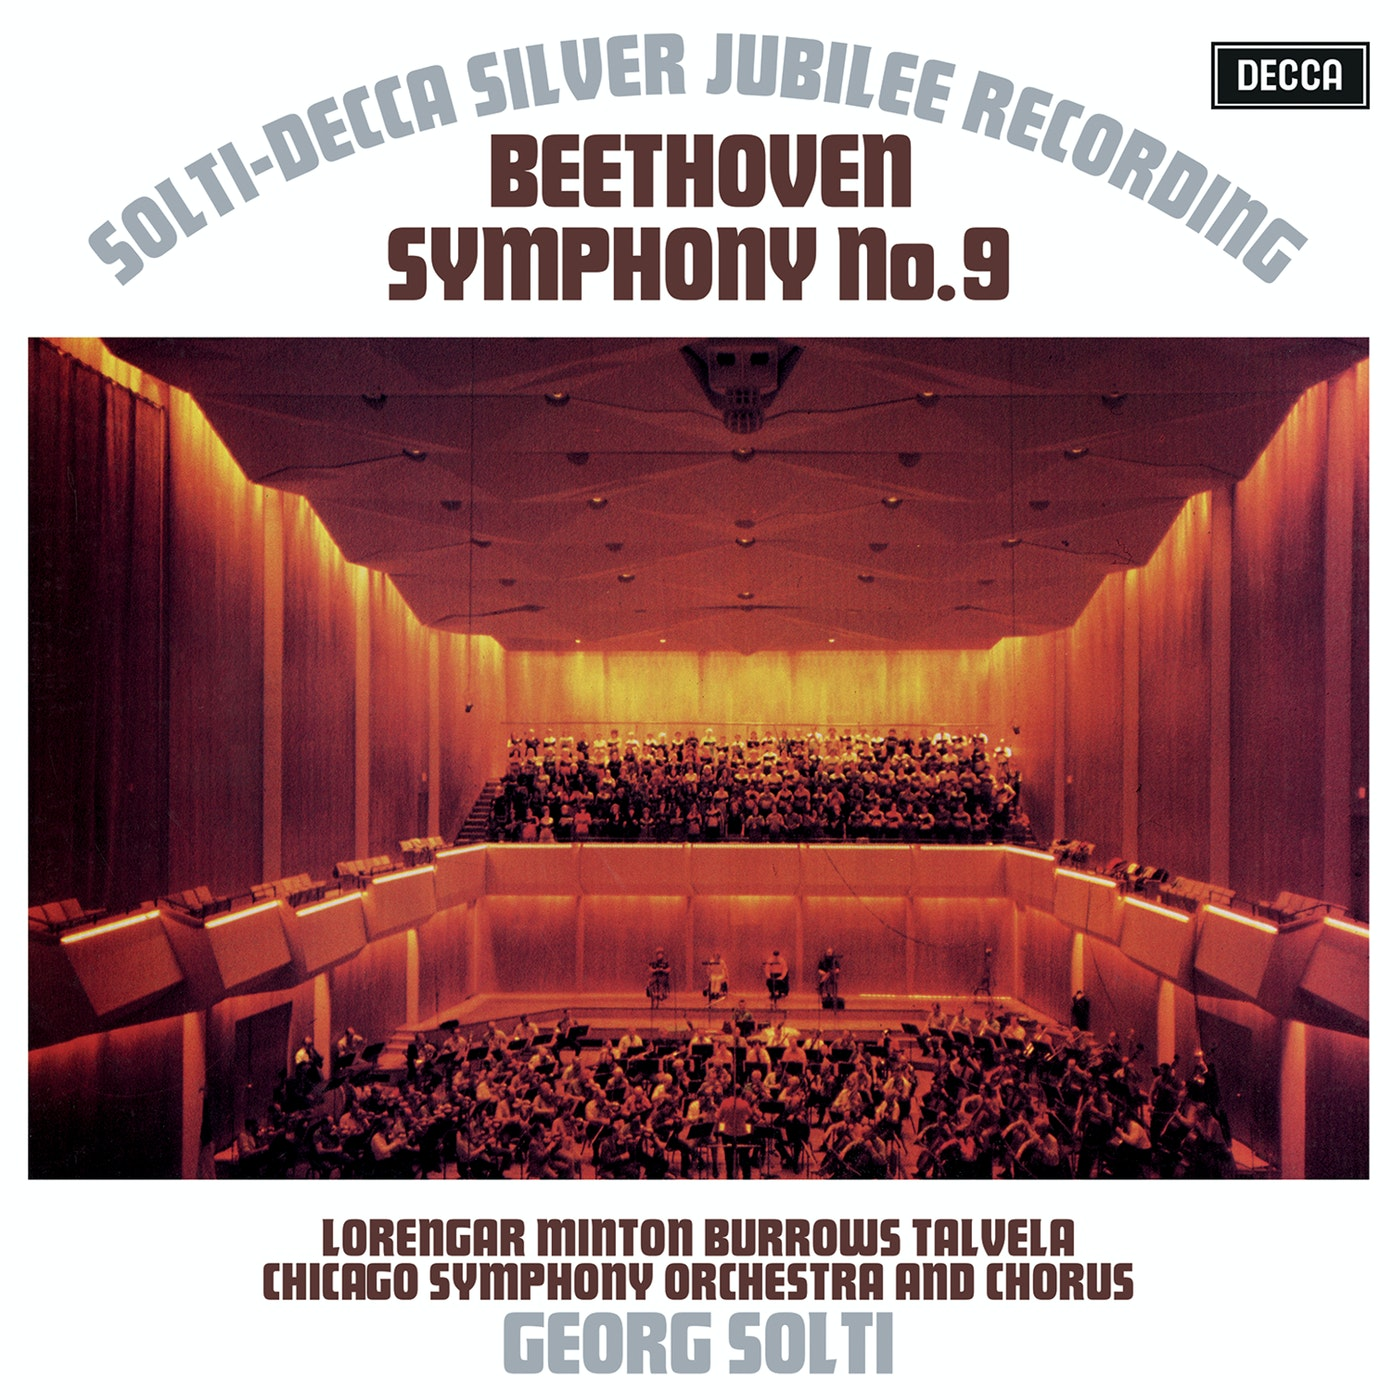 an introduction to the beethovens symphony no 9 choral The ninth, or choral, symphony, written in 1823, the last of the immortal group, stands there is a striking resemblance between the two in the choral parts, and beethoven himself describes the symphony as being in the style of the pianoforte the symphony is without introduction proper.